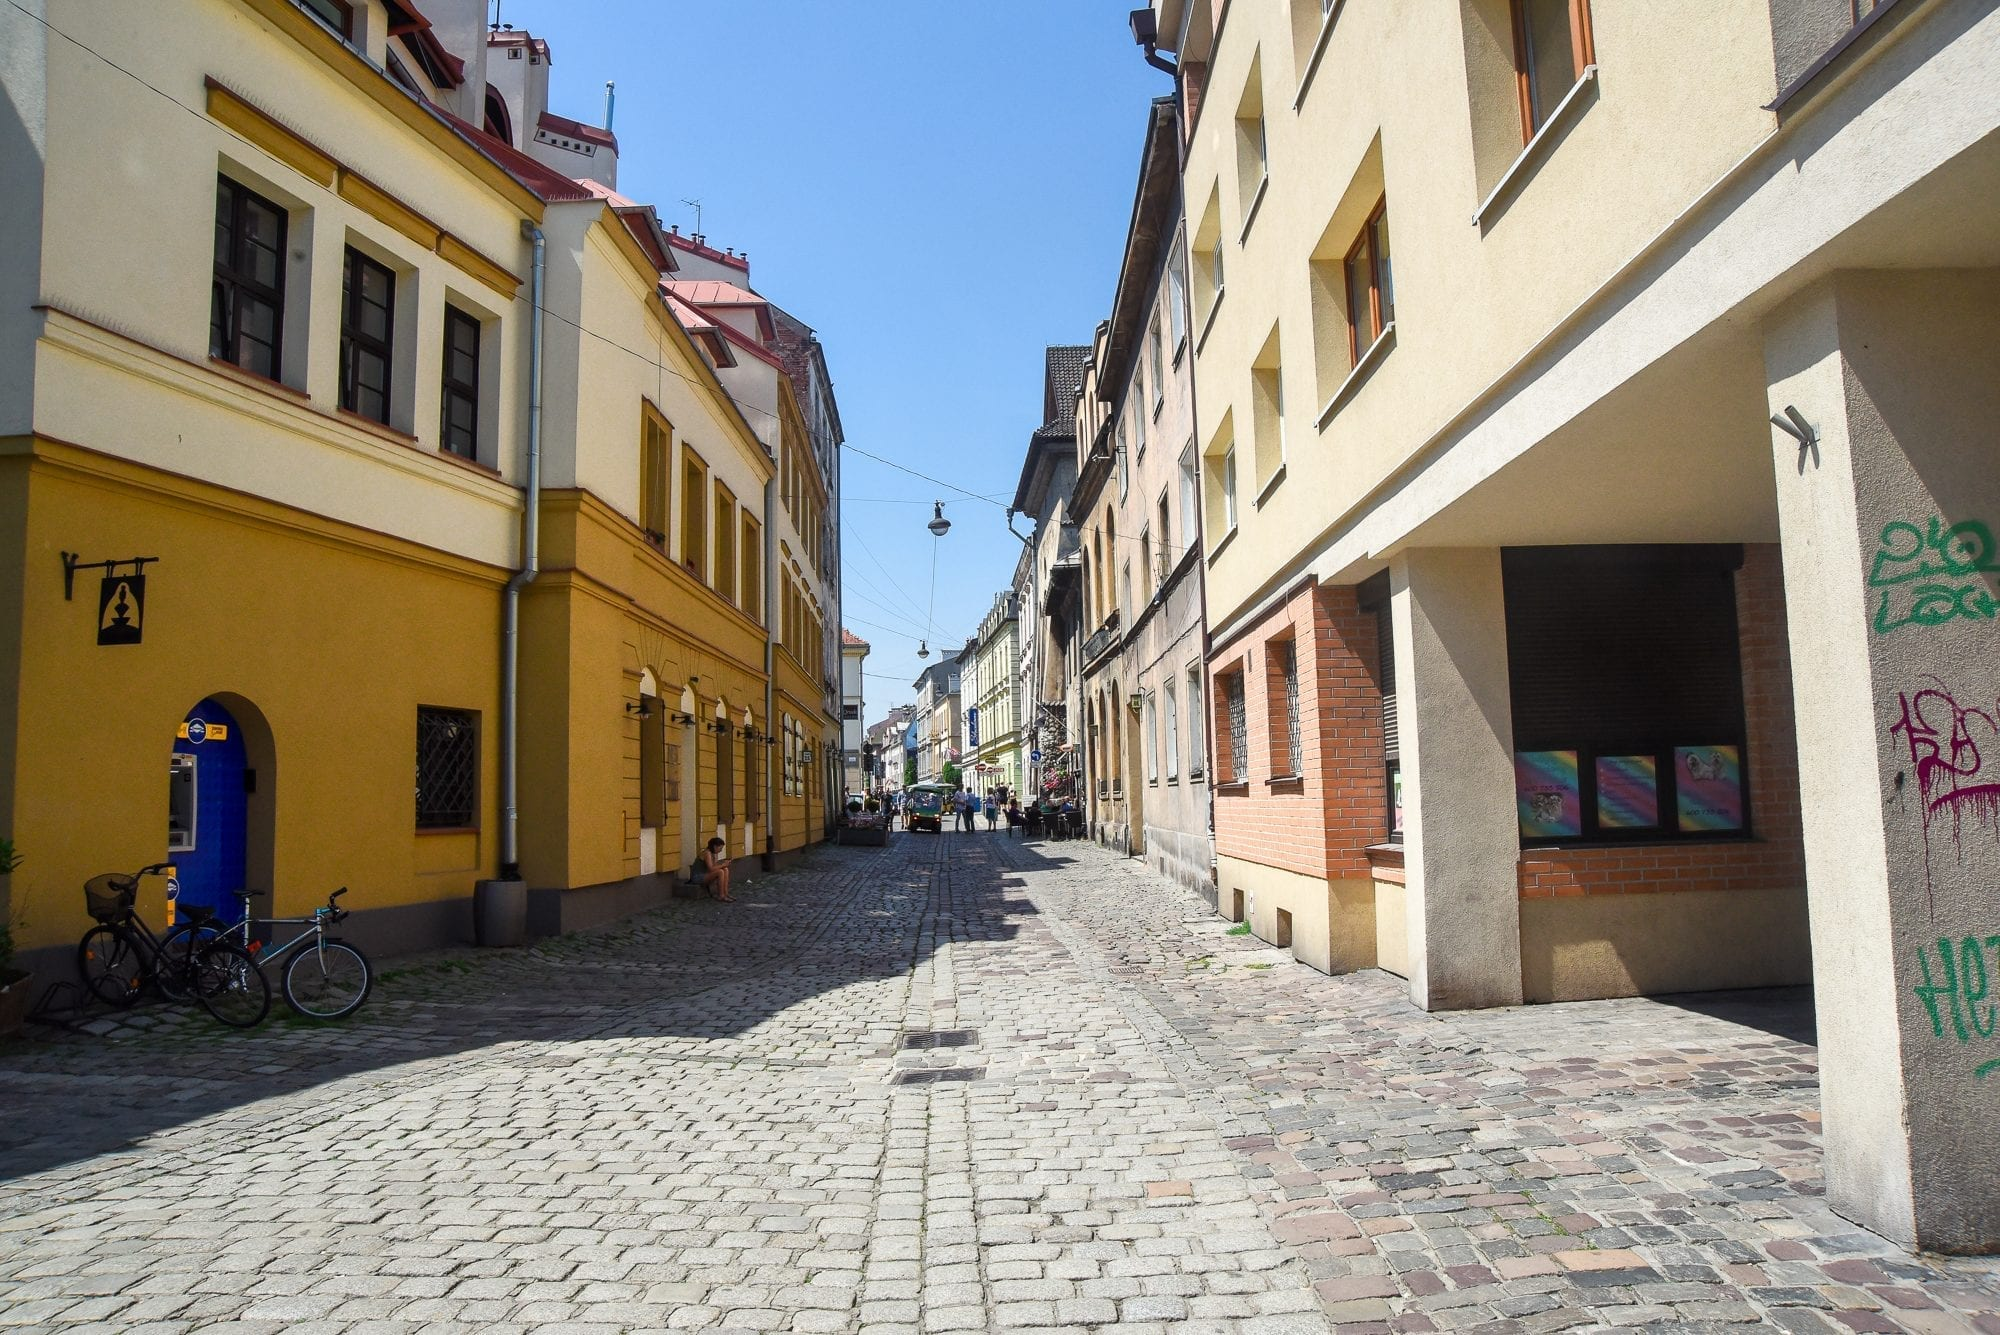 walking down the street in the jewish quarter of krakow